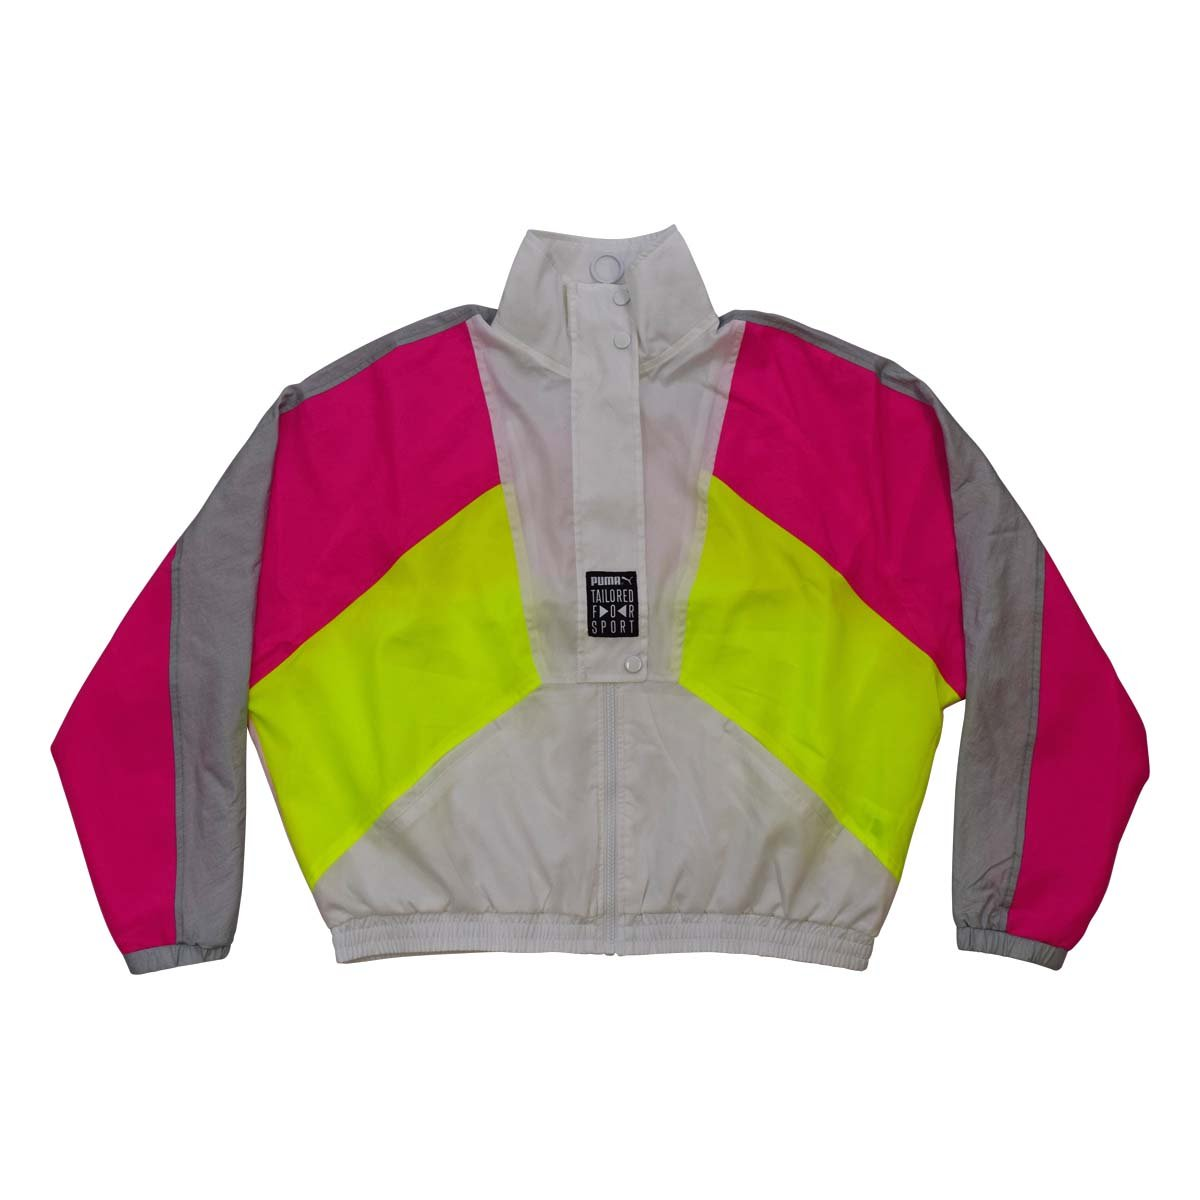 Tailored for Sport OG Women's Retro Jacket